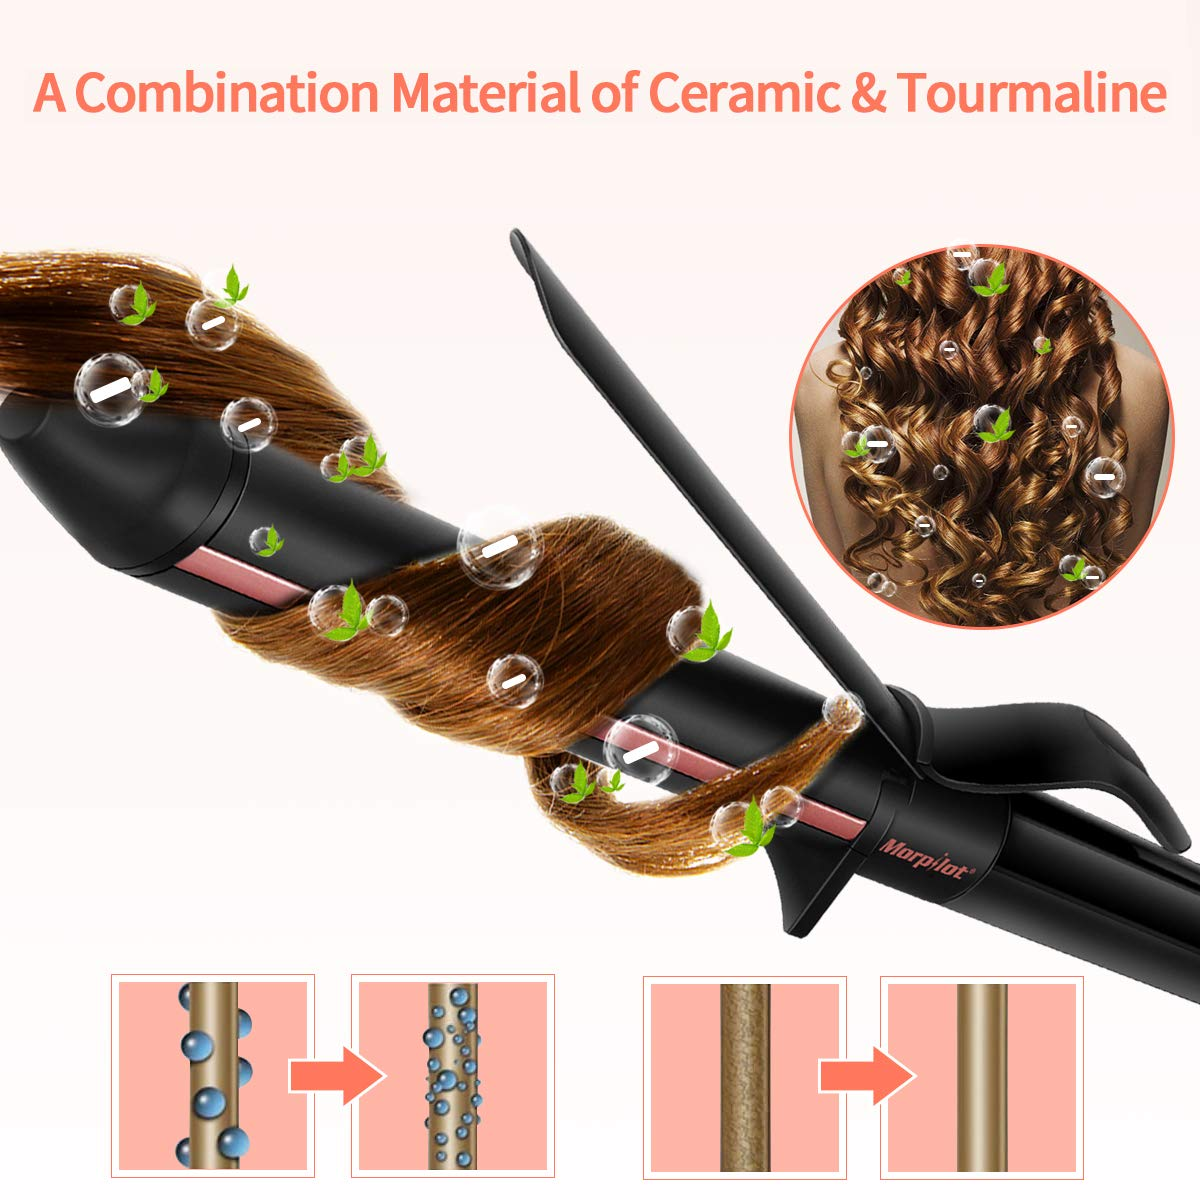 Ceramic Curling Iron,1.25 inch Curling Wand,Tourmaline Coating Hair curler with Rotary Temperature Control LCD Temp Display Include Heat Resistant Glove